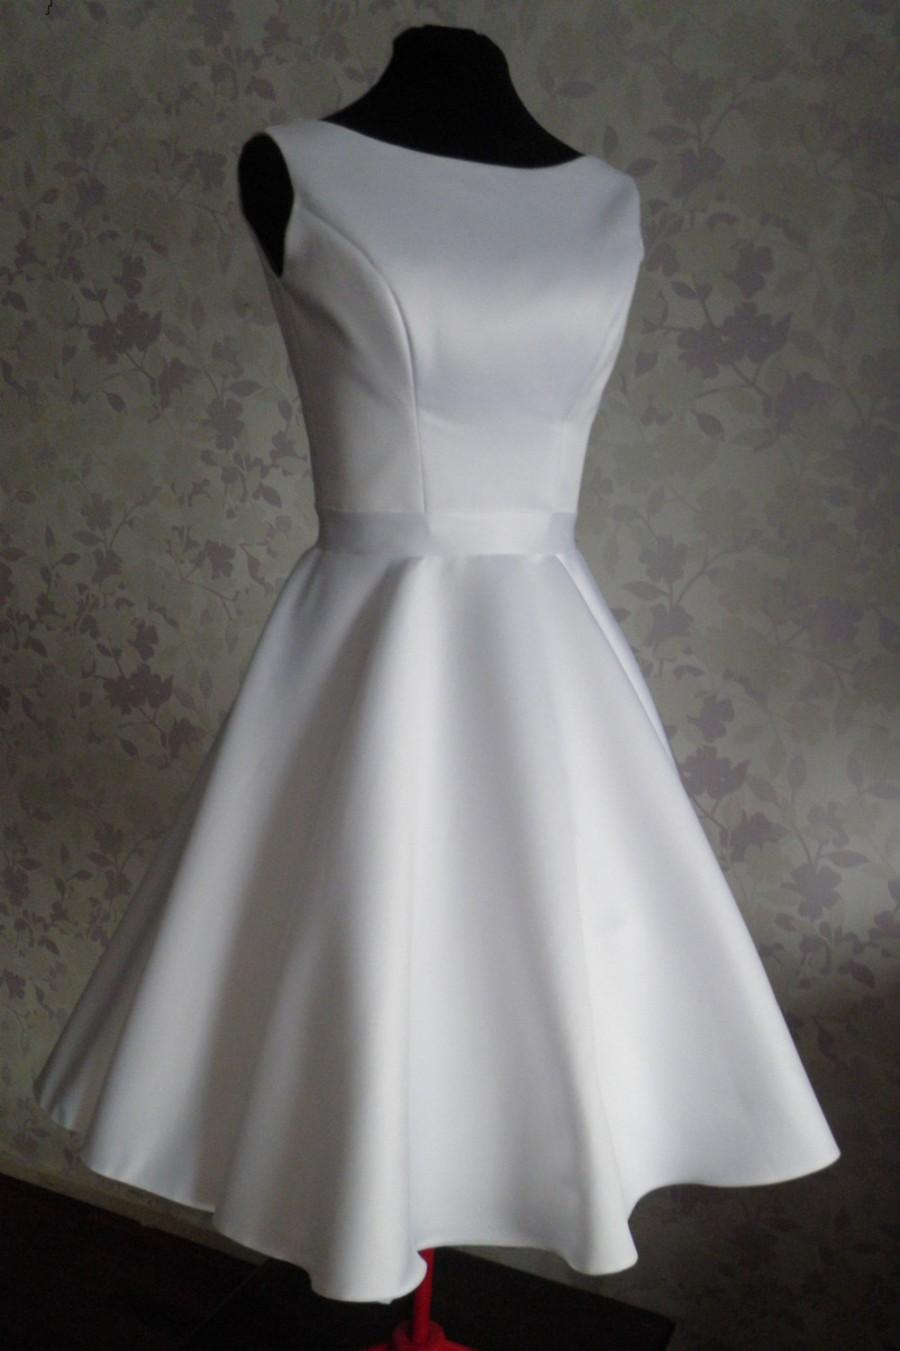 Vintage Inspired Wedding Dress In Style Of Audrey Hepburn 1950 With ...